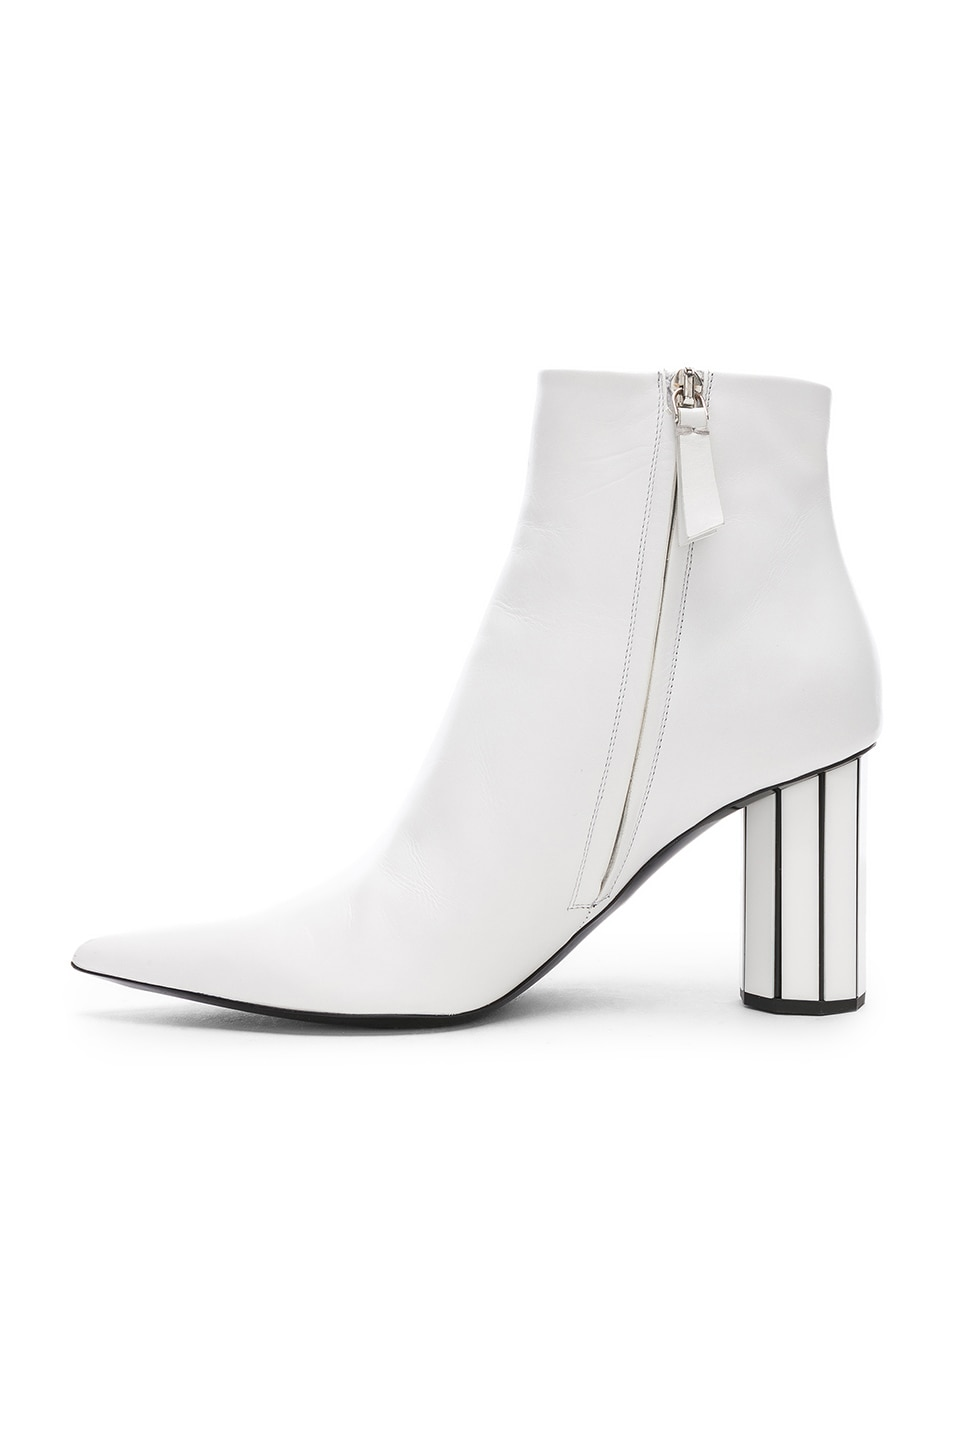 Image 5 of Proenza Schouler Mirror Heel Ankle Boots in White